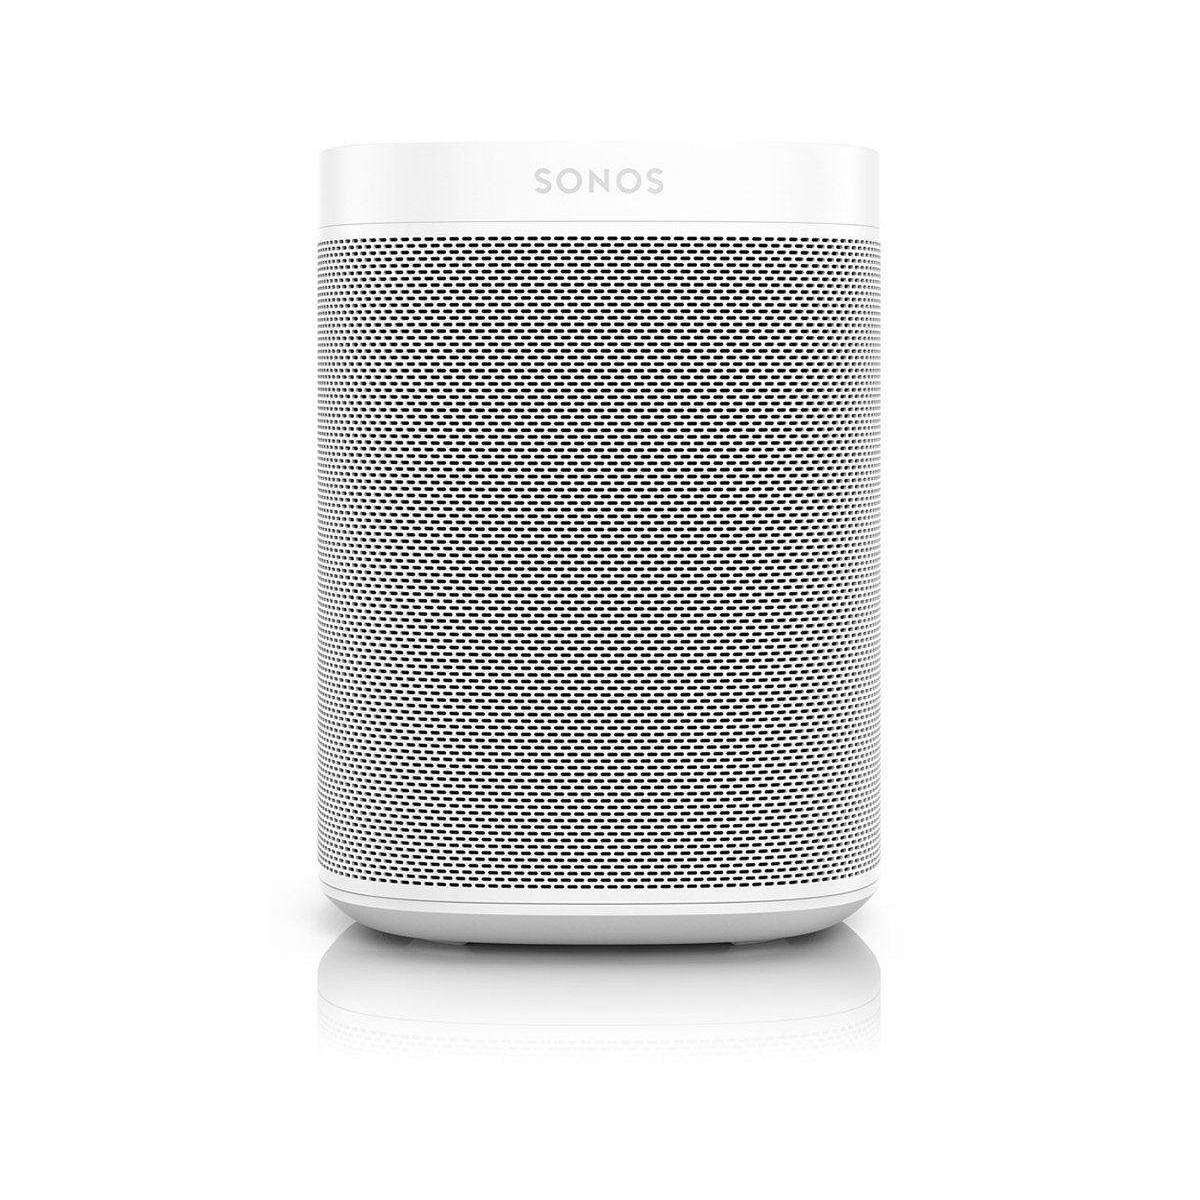 SONOS ONE Wireless Speaker - Call SpatialOnline 0345 557 7334